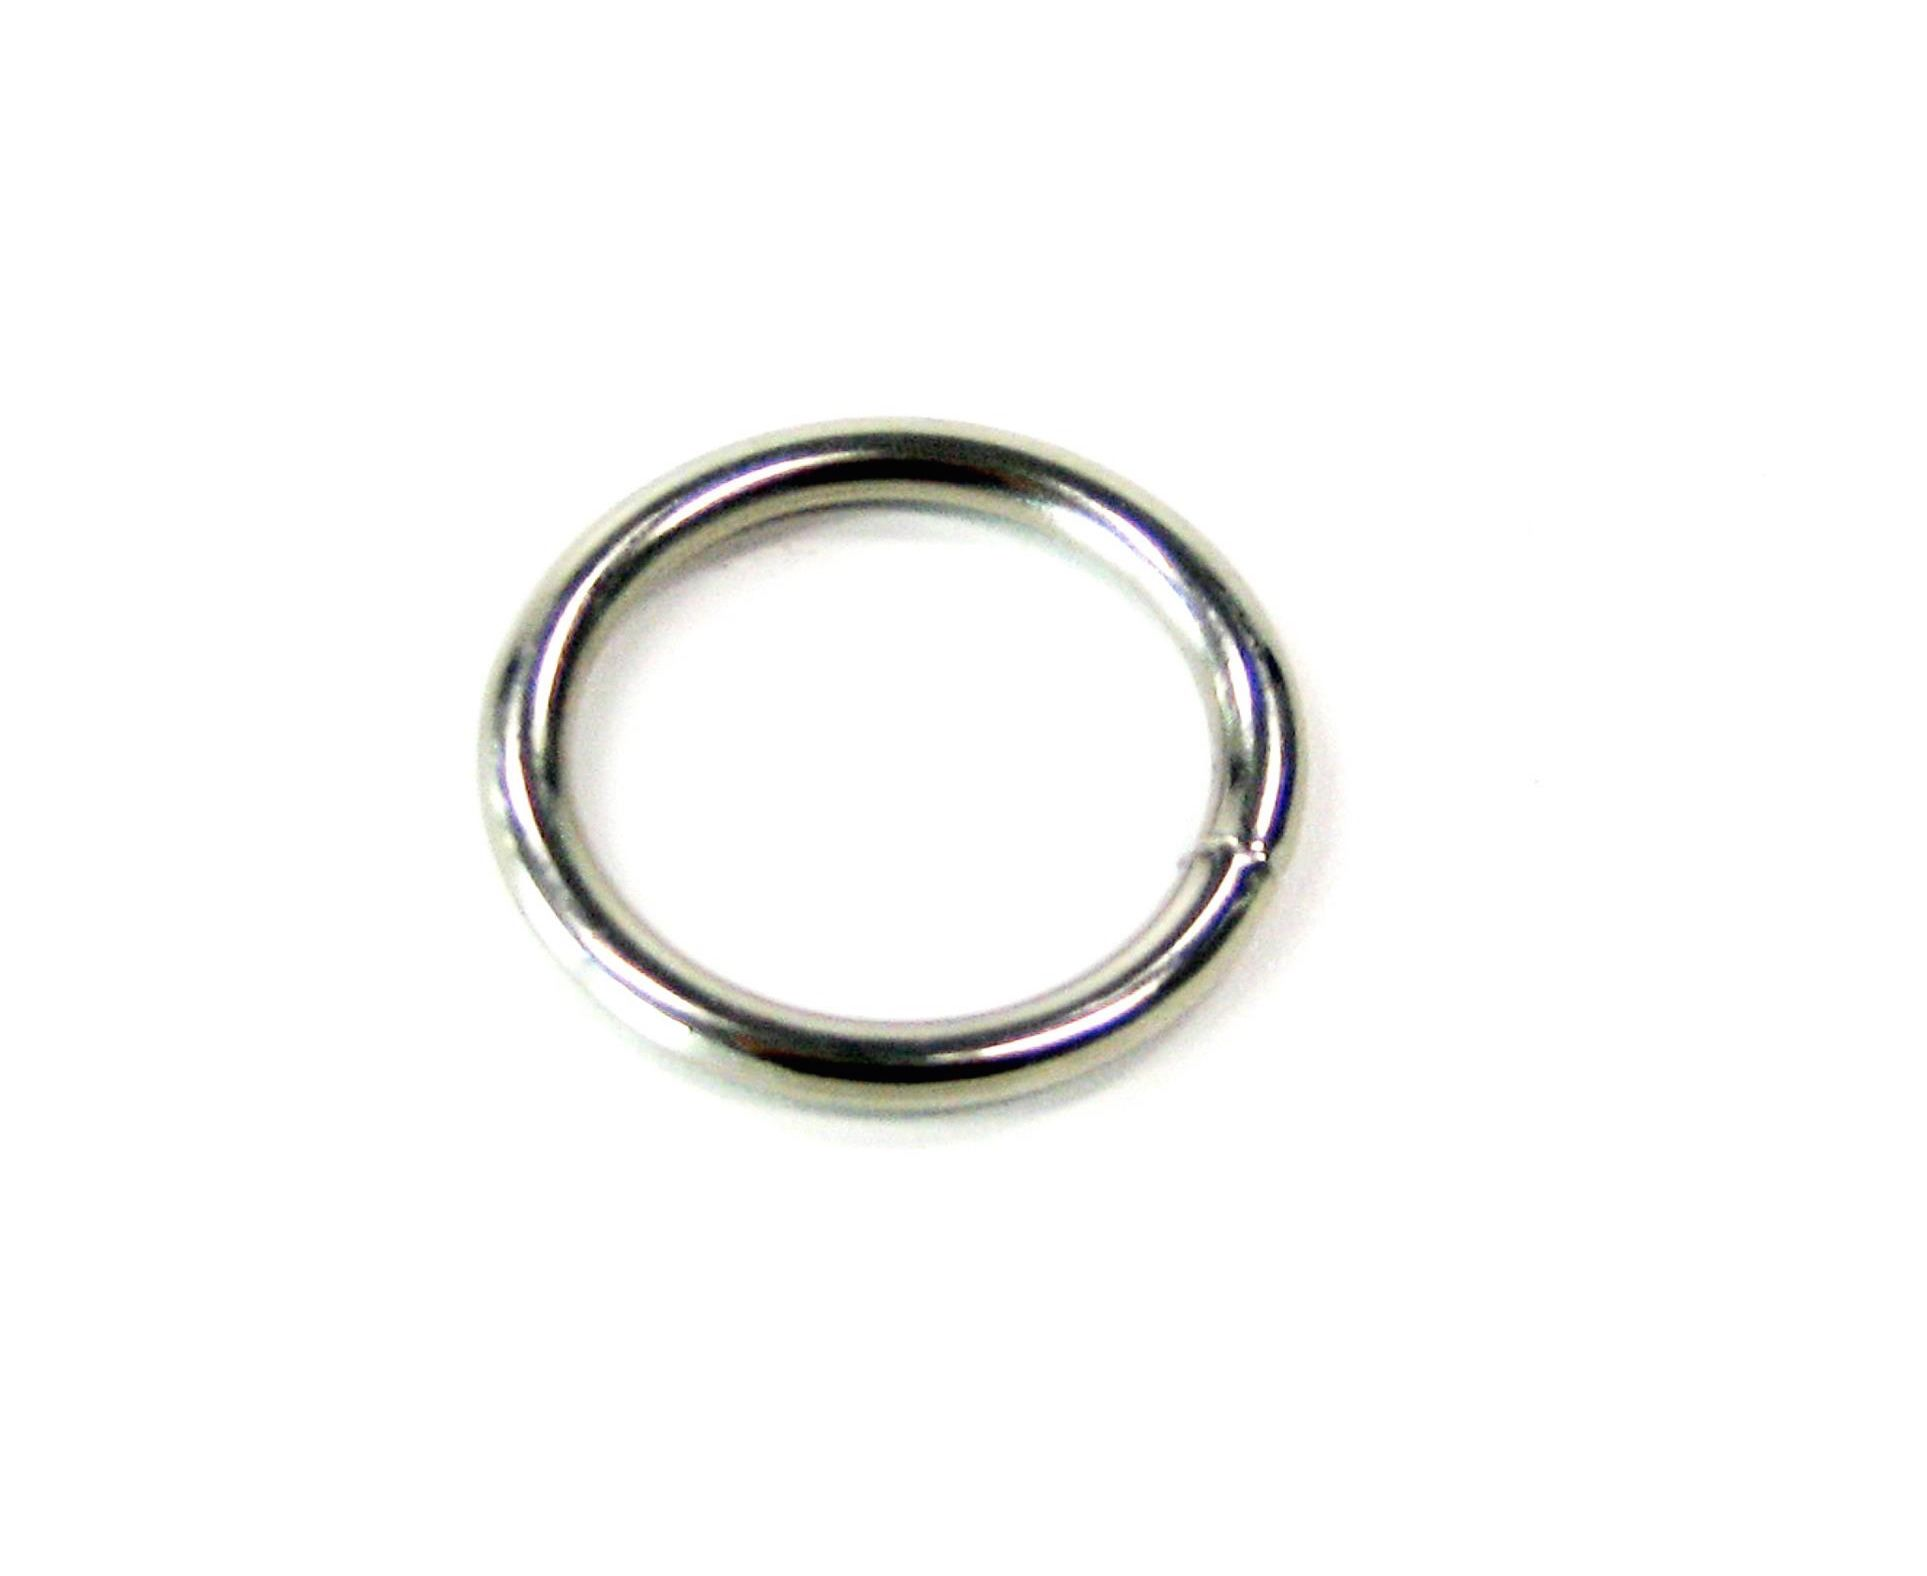 Ronde ring vernikkeld 18 x 2,8mm